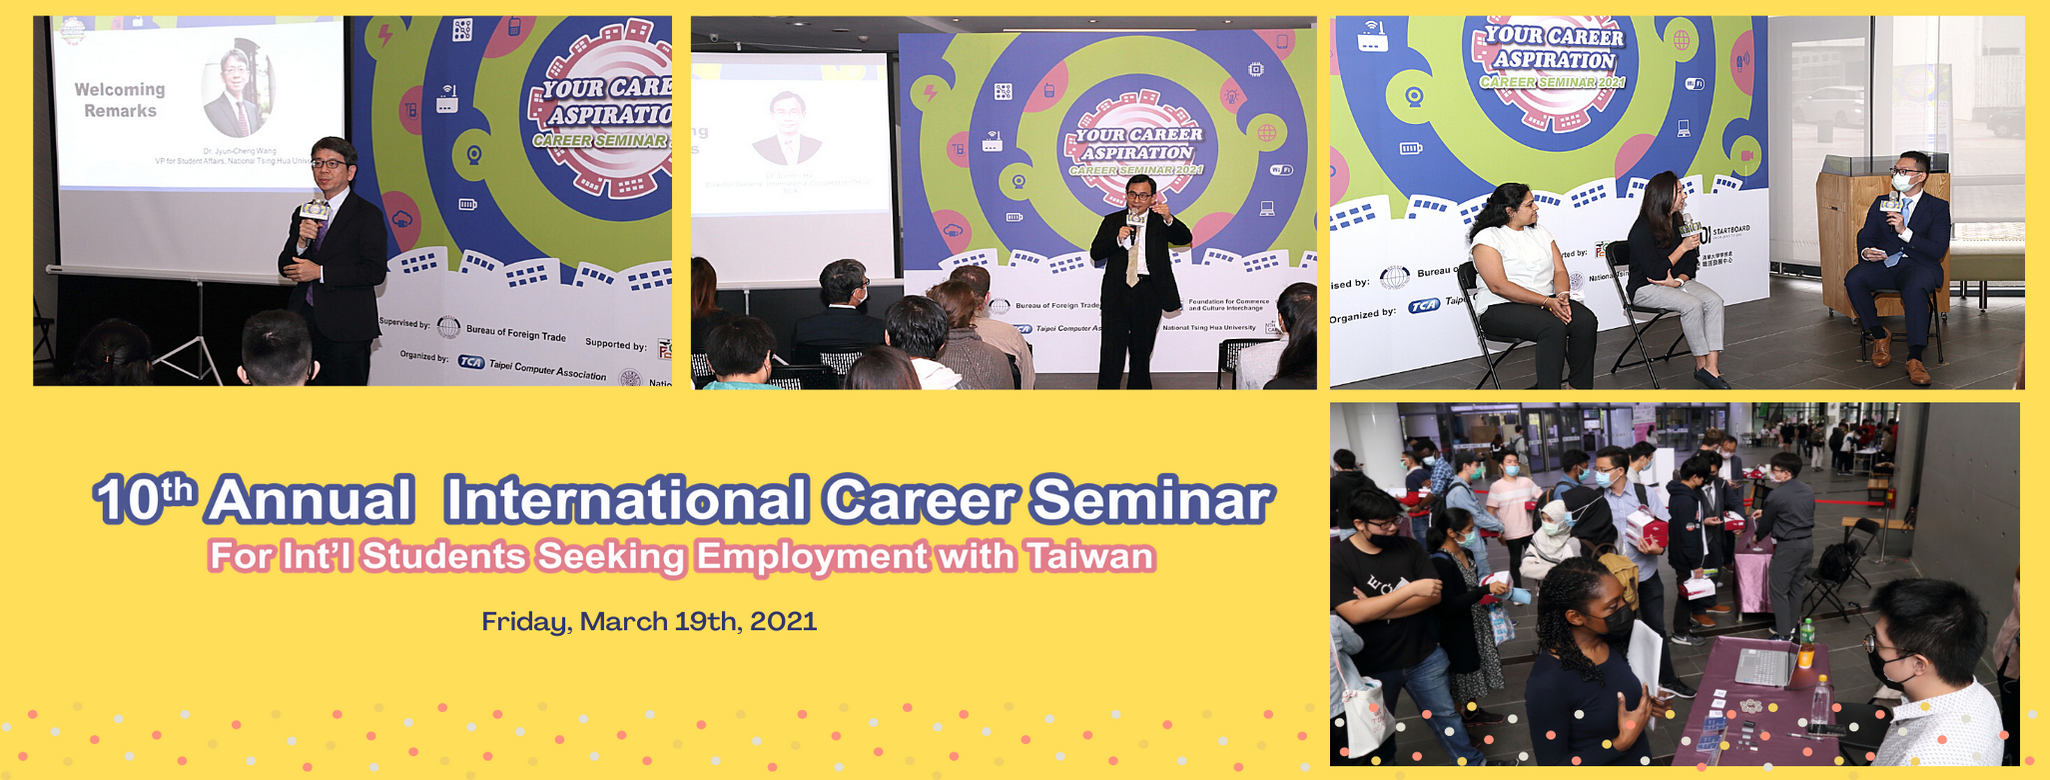 【Career Seminar 2021】 For Int'l Talents Seeking Employment with Taiwan!